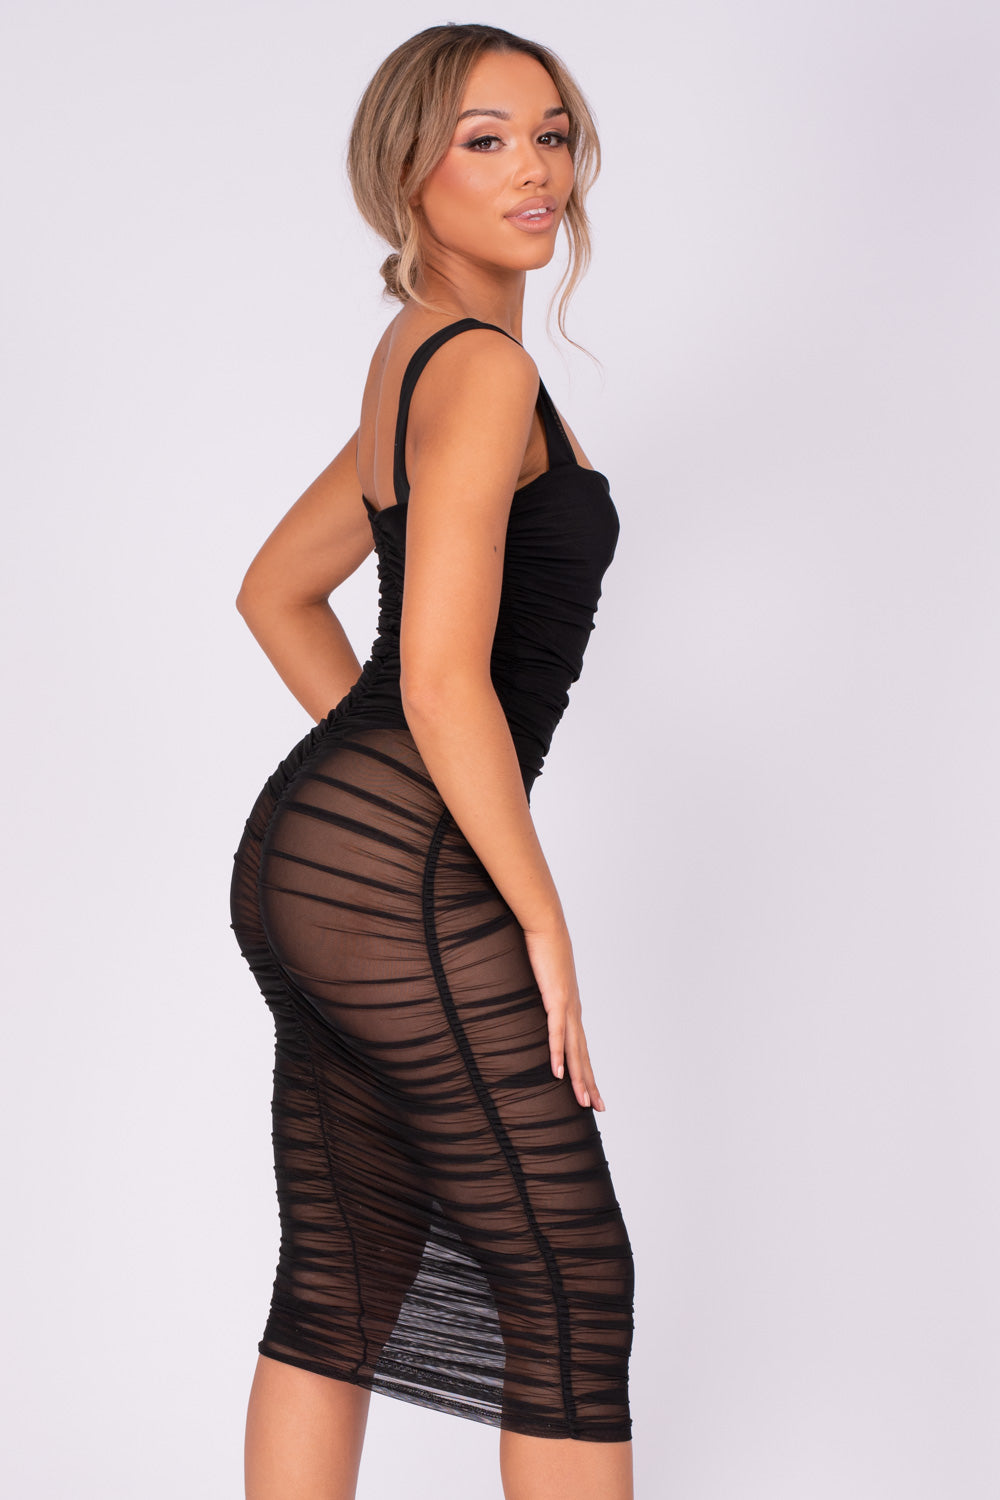 Barely There Black Sheer Mesh Net Bodysuit Midi Dress